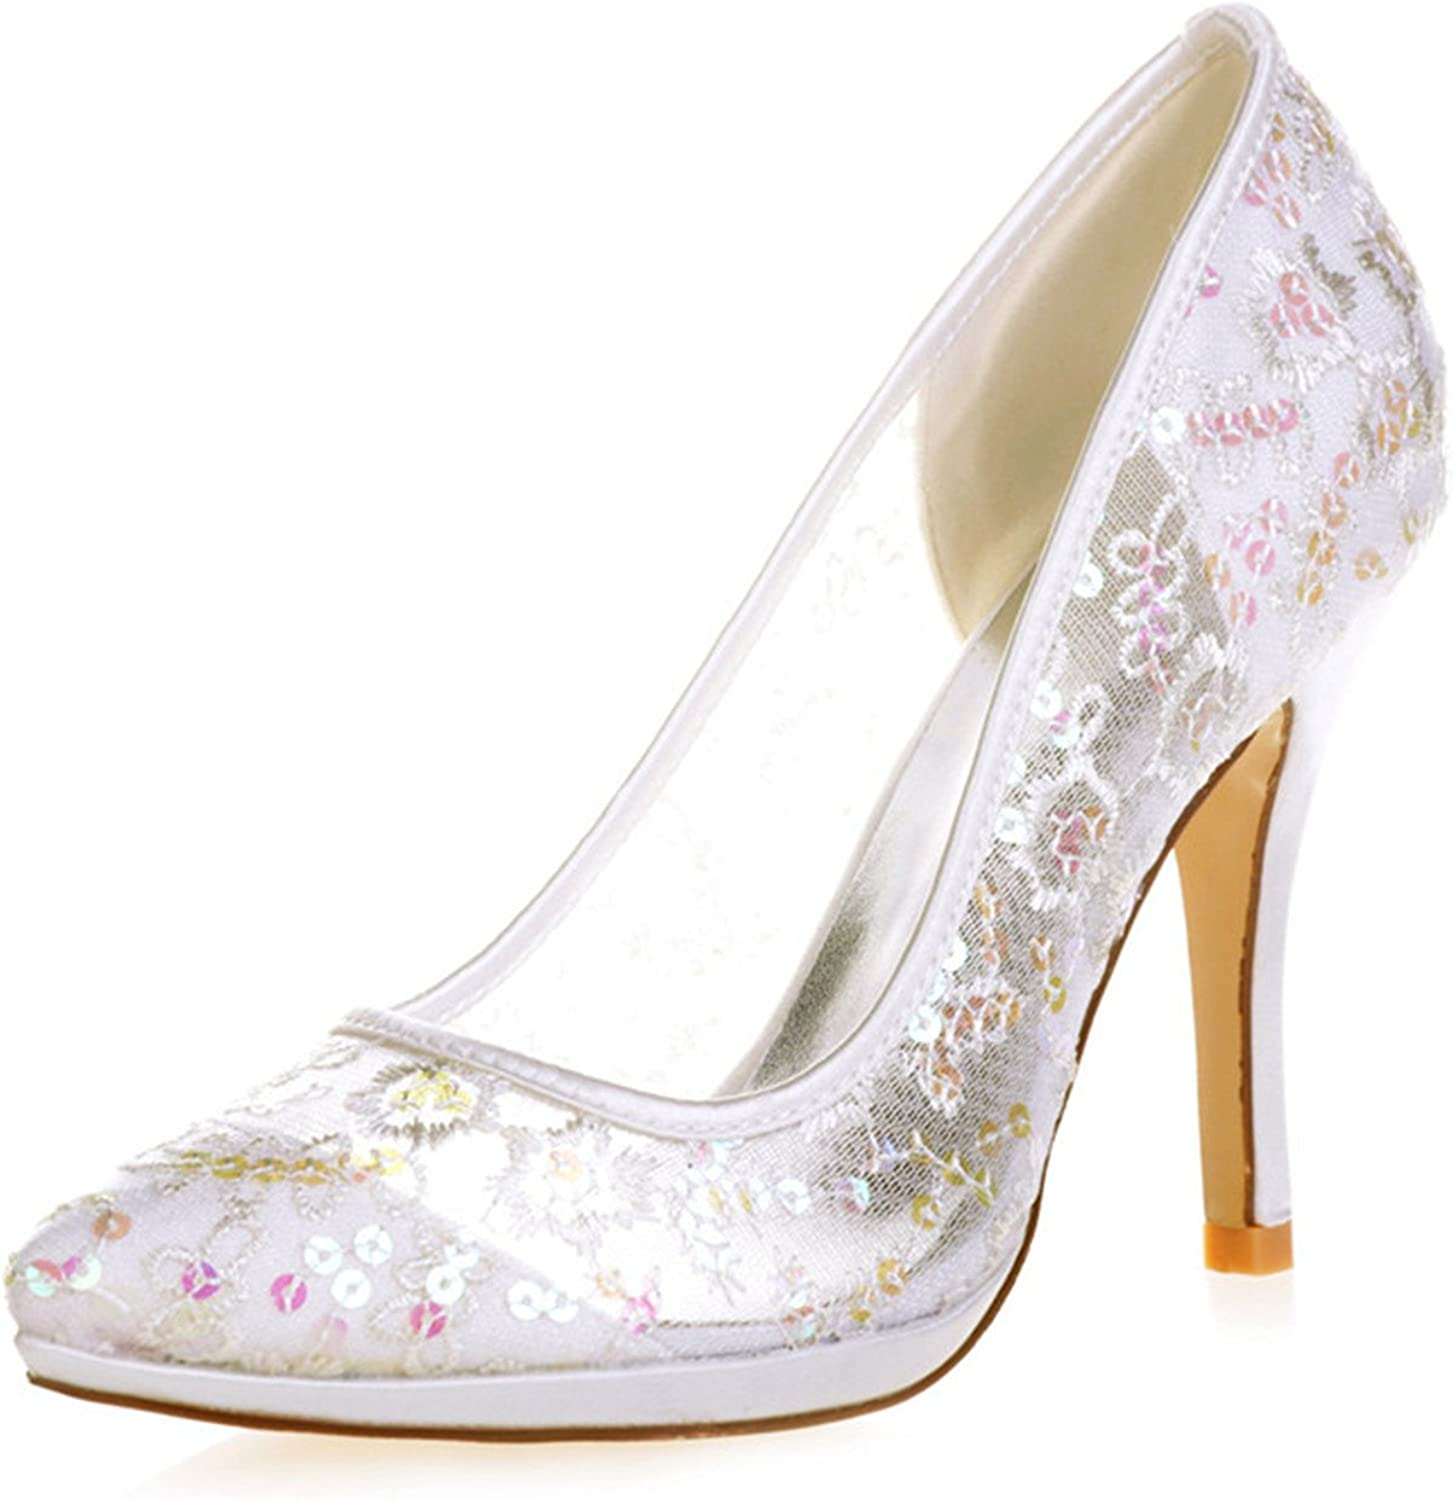 Uryouthstyle Sequins High Heels Stiletto Wedding shoes Bridal Pumps